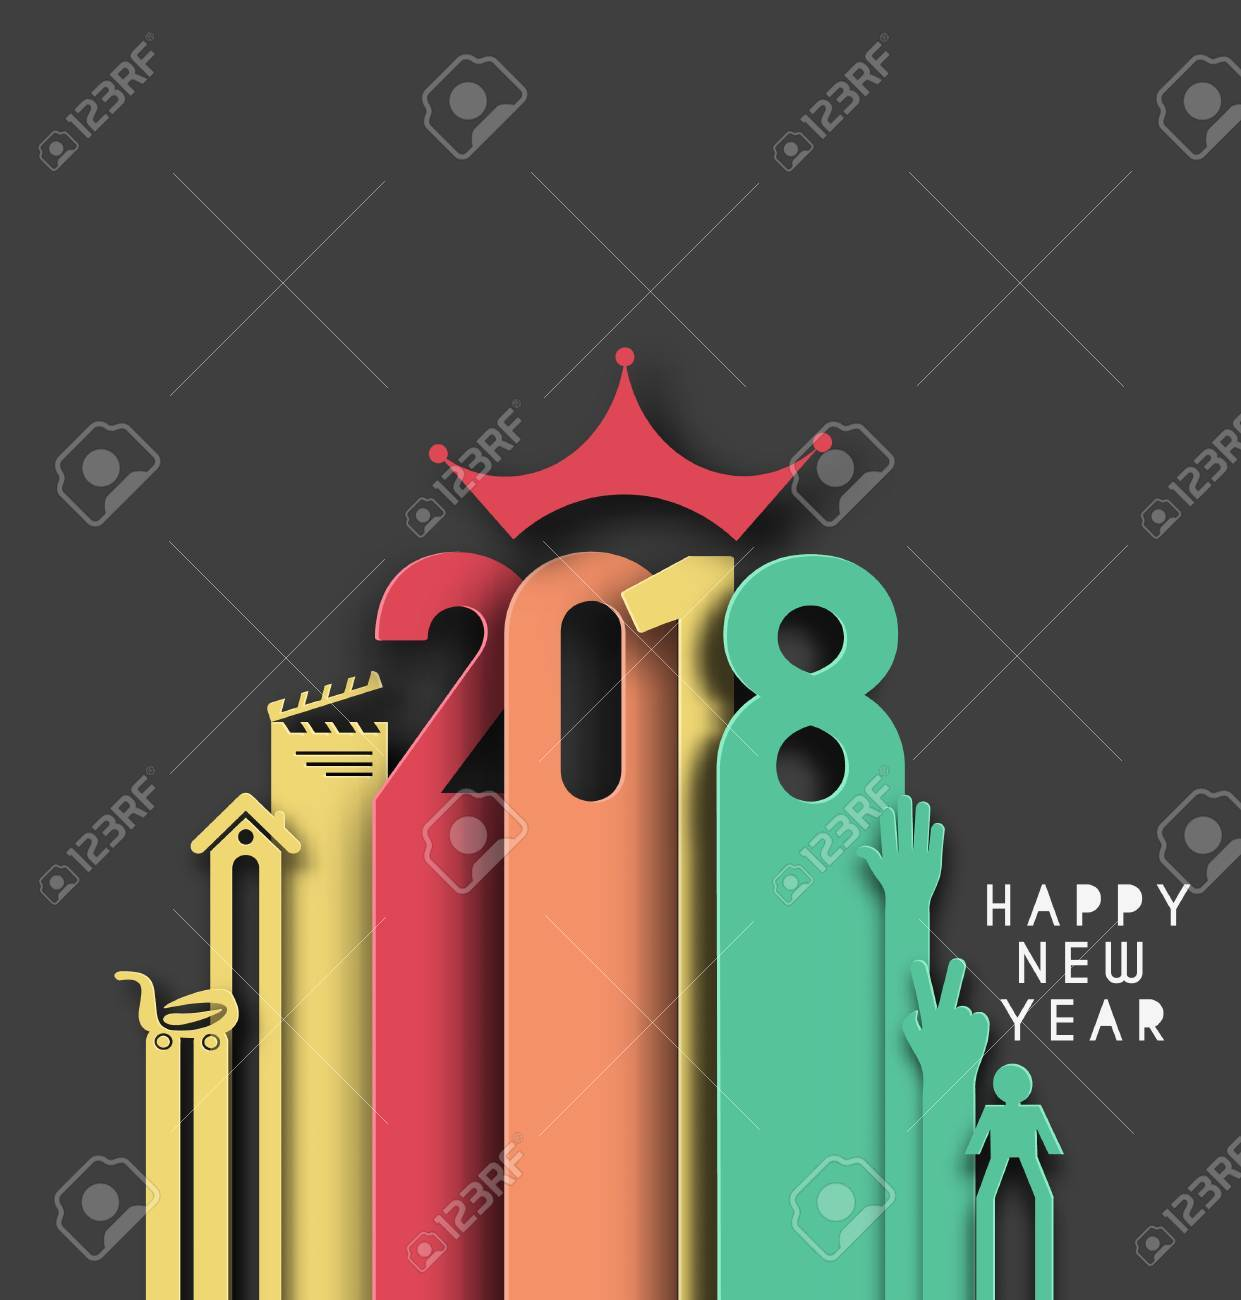 Happy new year 2018 Text Design, Vector illustration.